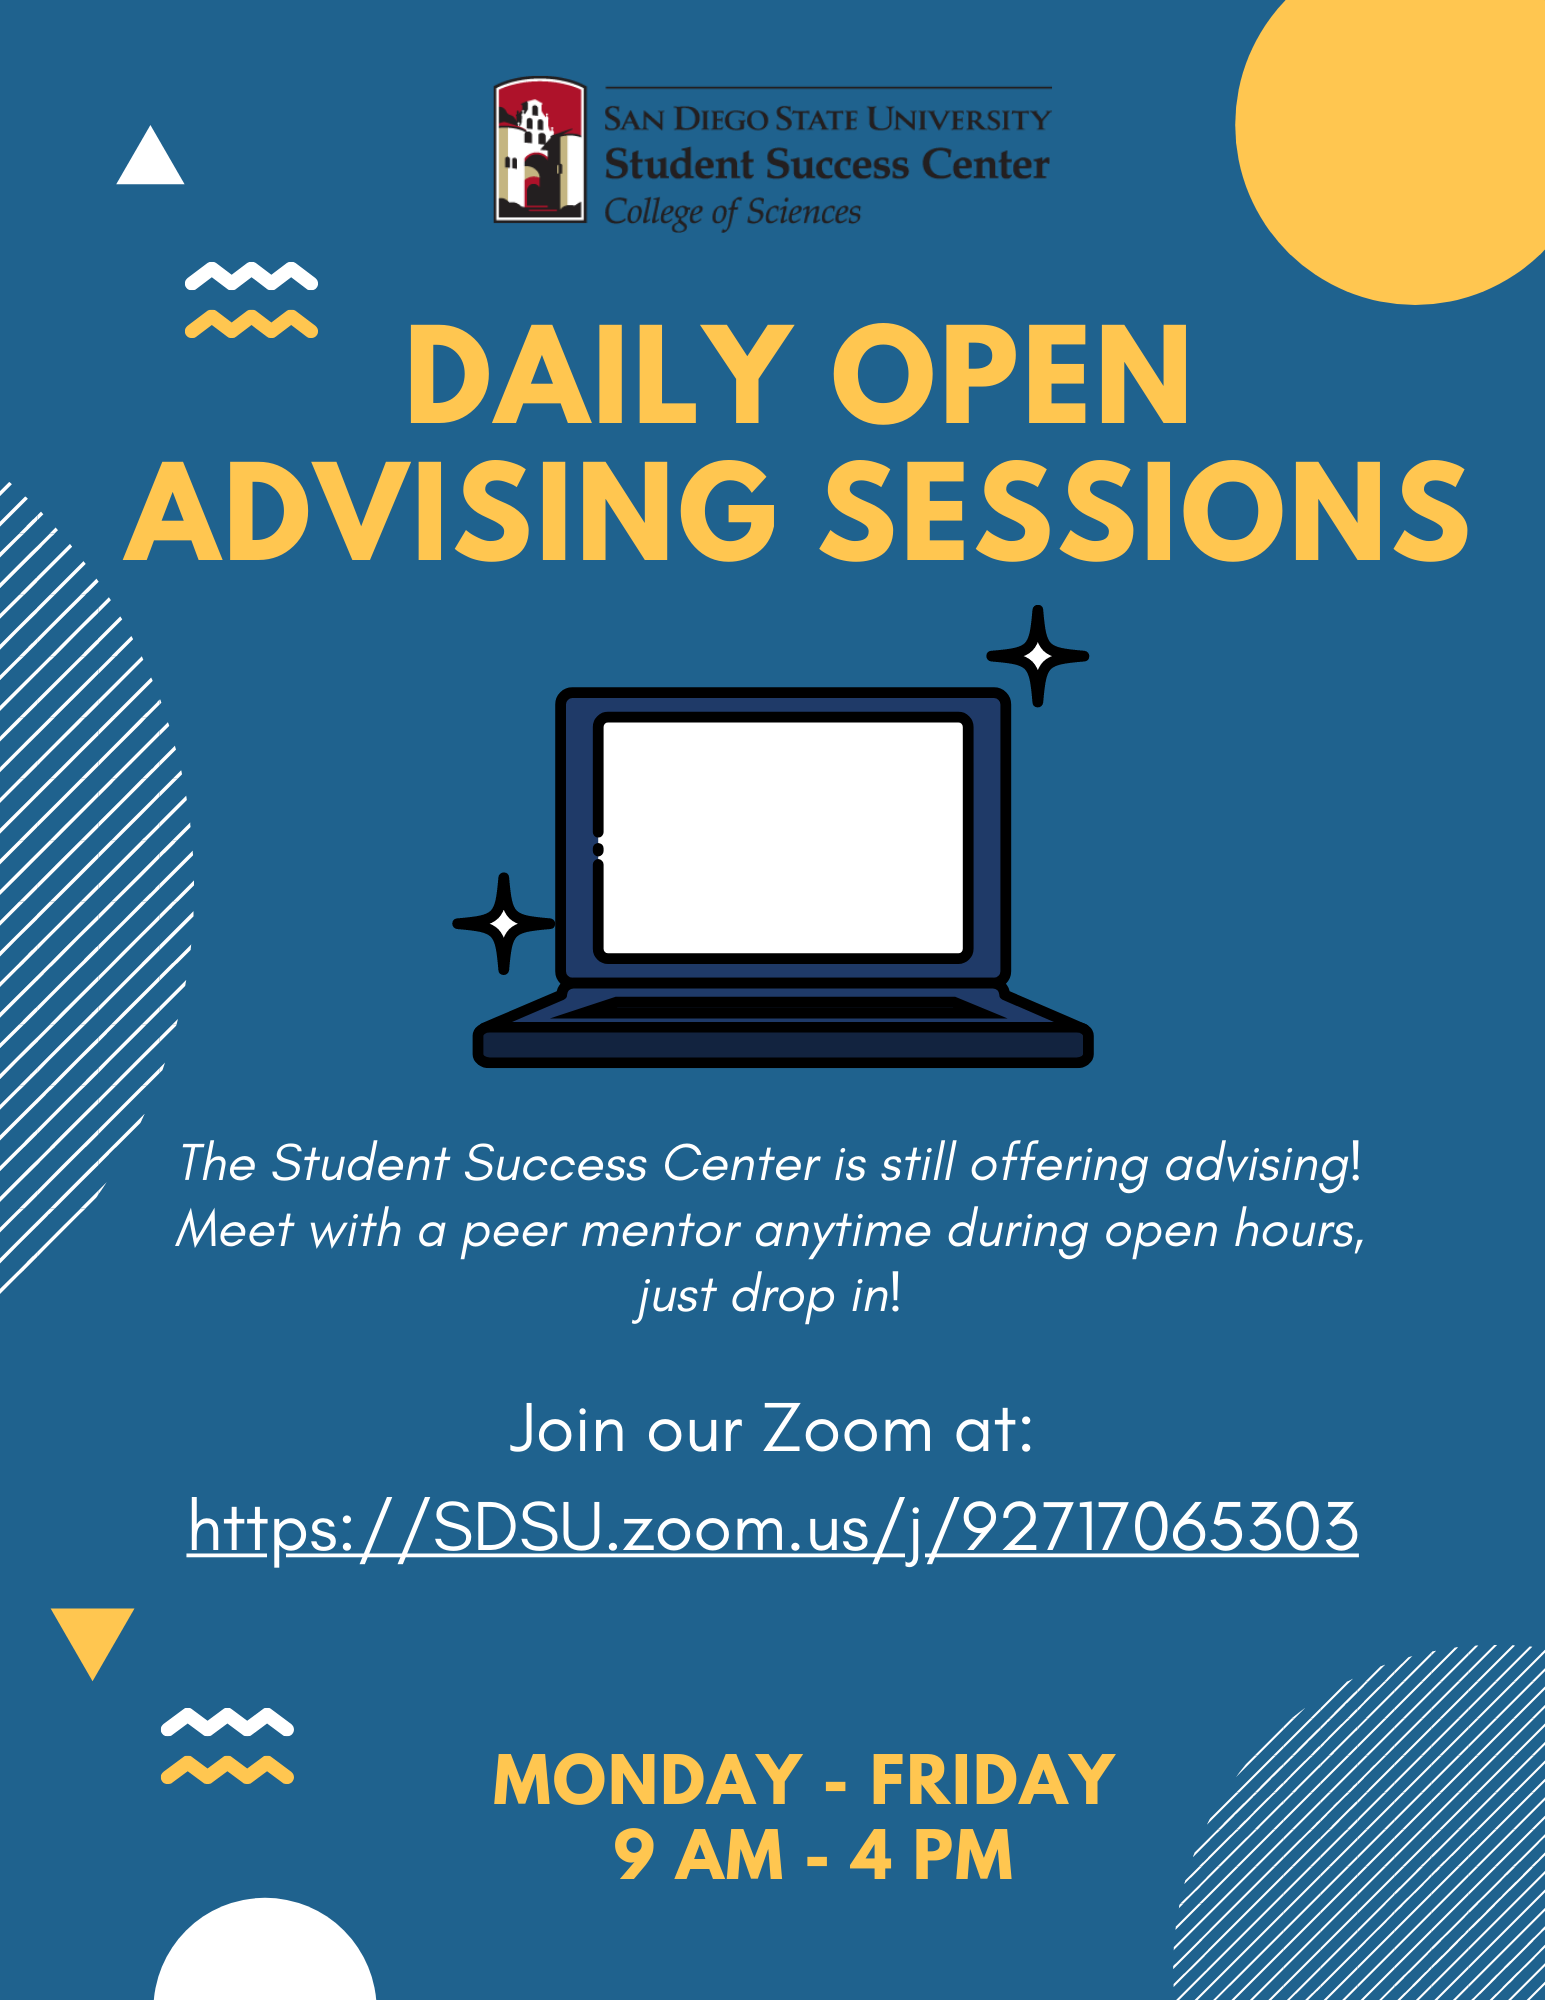 Virtual peer advising flyer with zoom link and hours